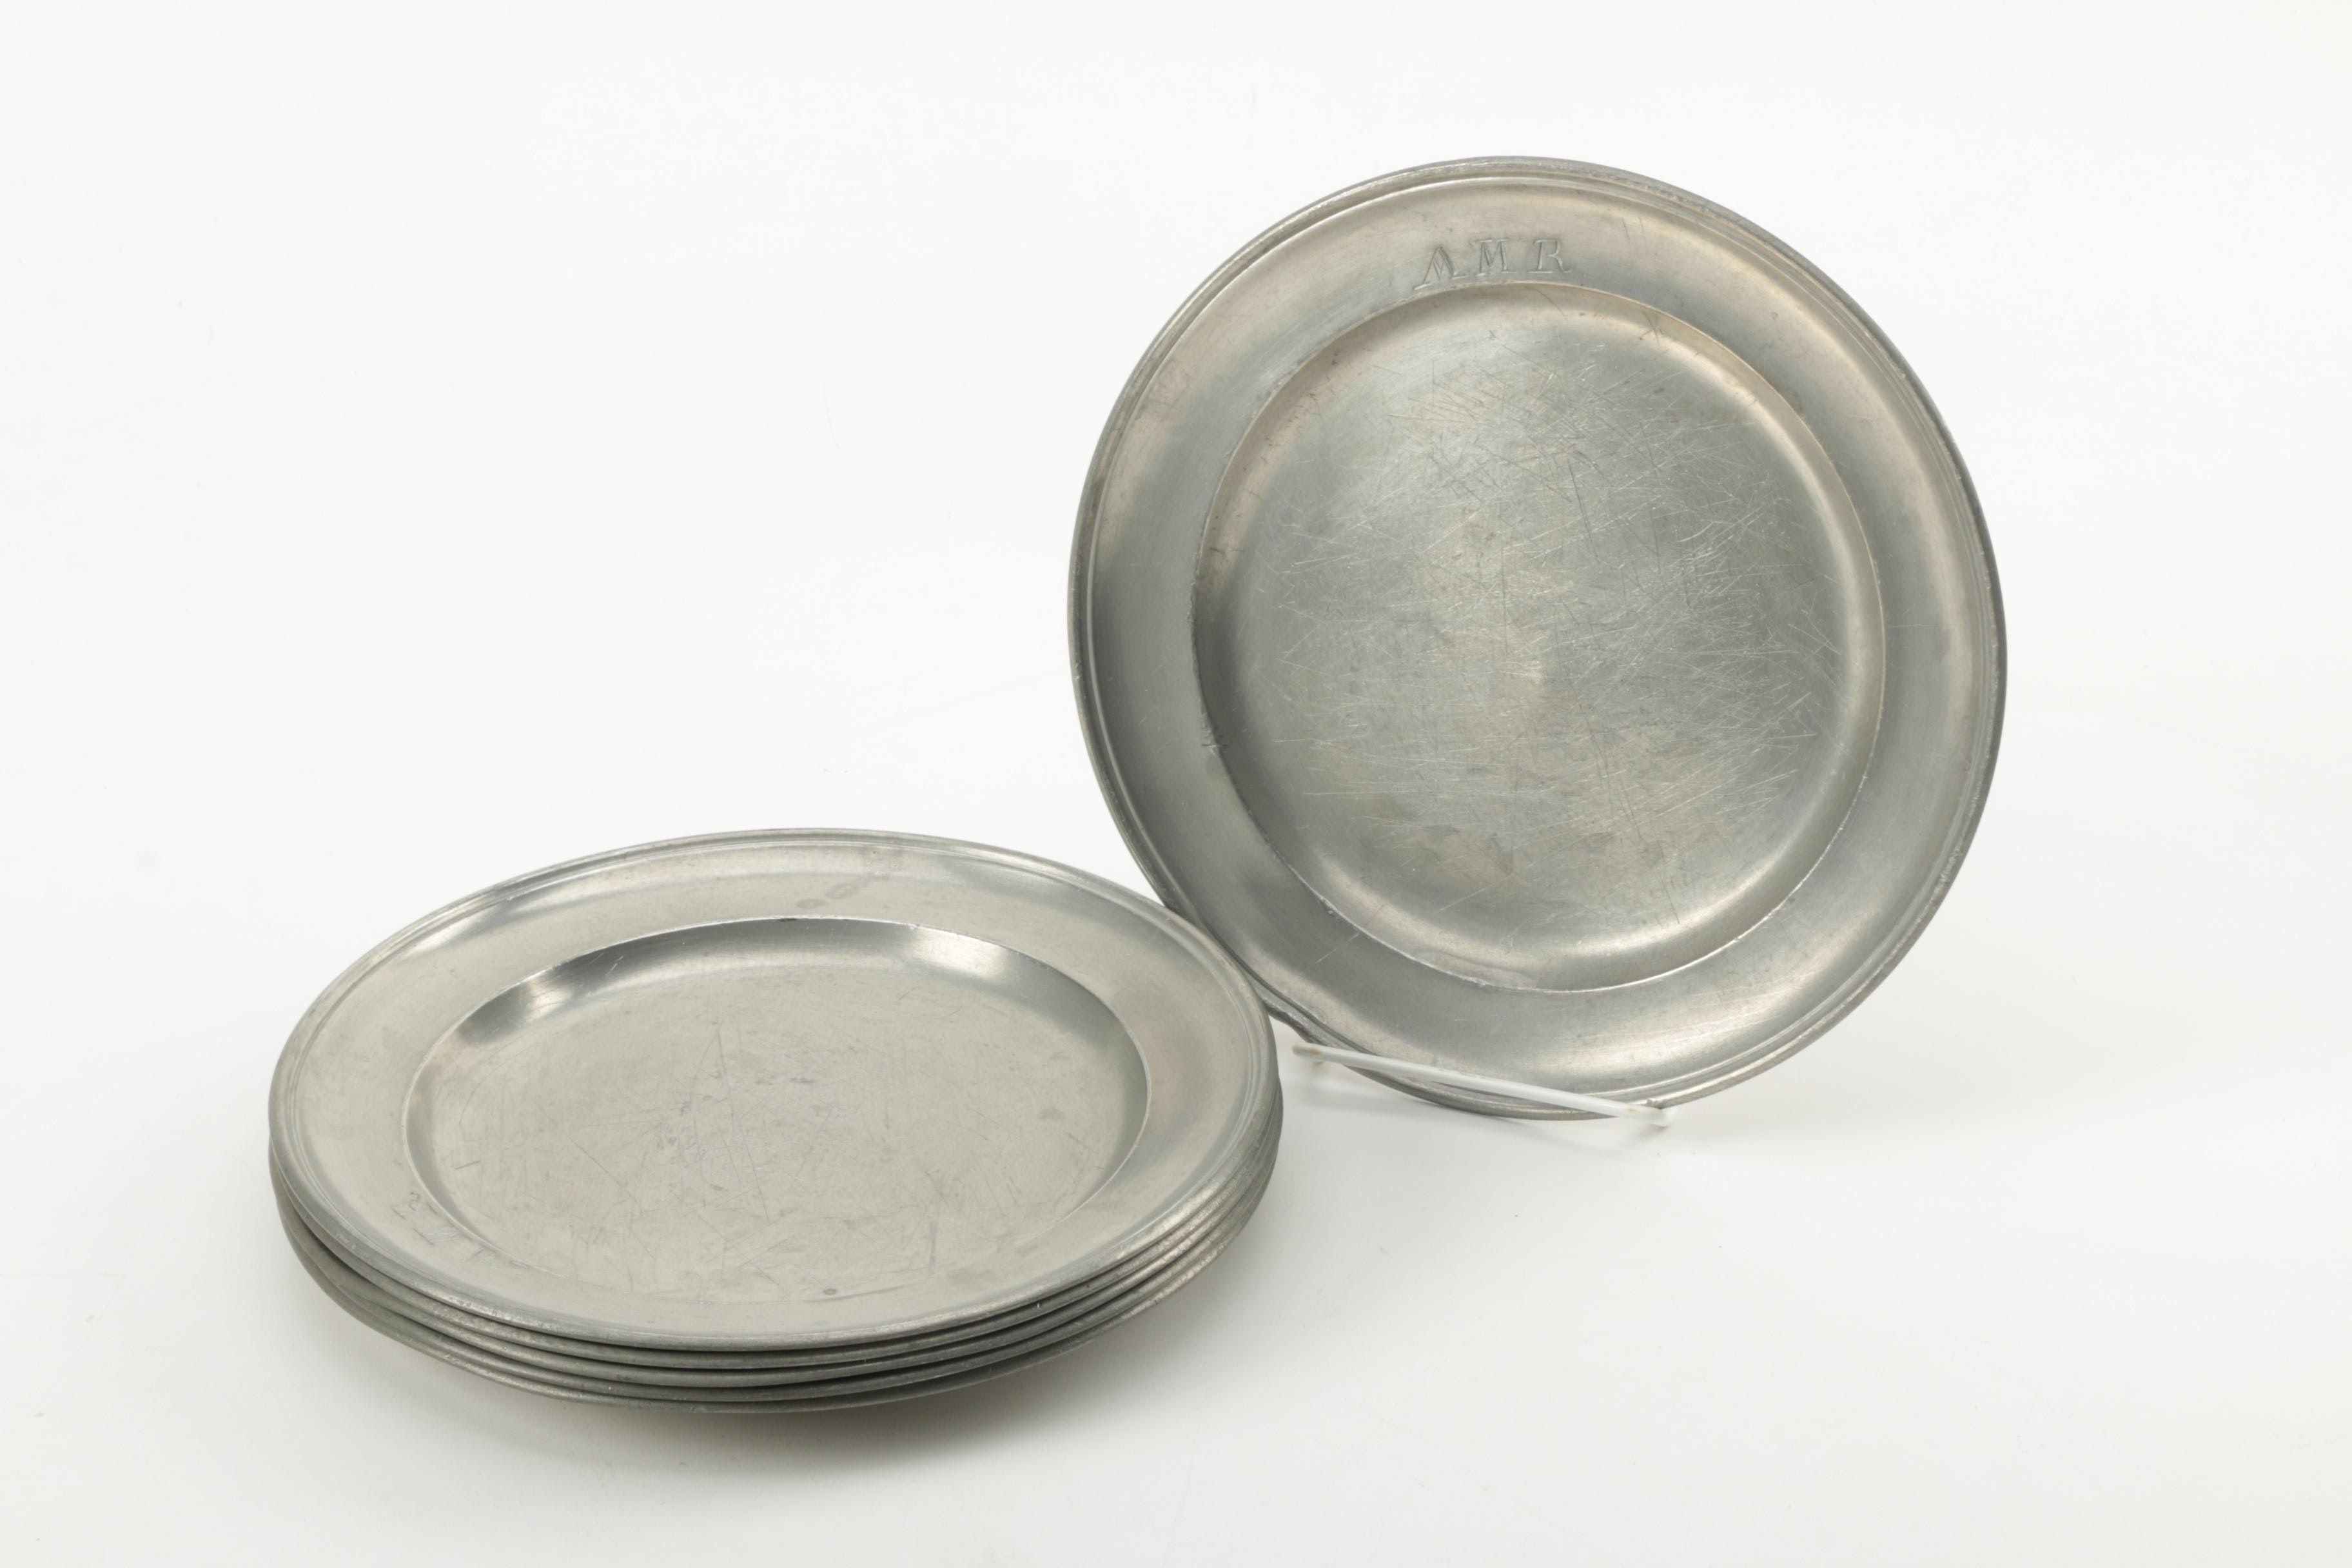 Set of Personally Engraved Pewter Dinner Plates ... & Set of Personally Engraved Pewter Dinner Plates : EBTH